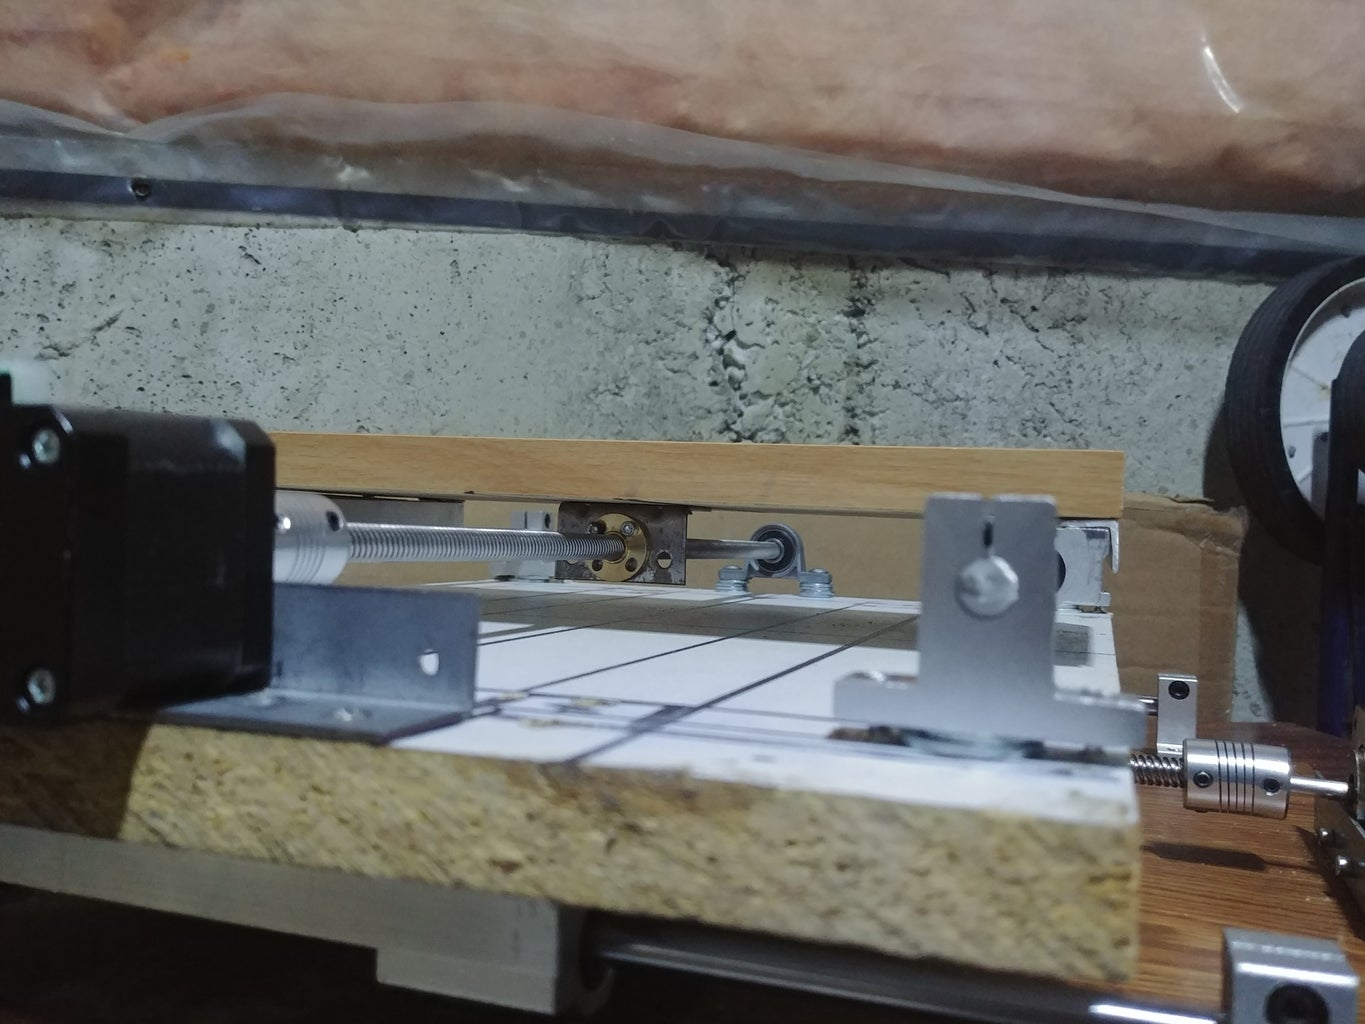 Making the Y-axis & X-axis